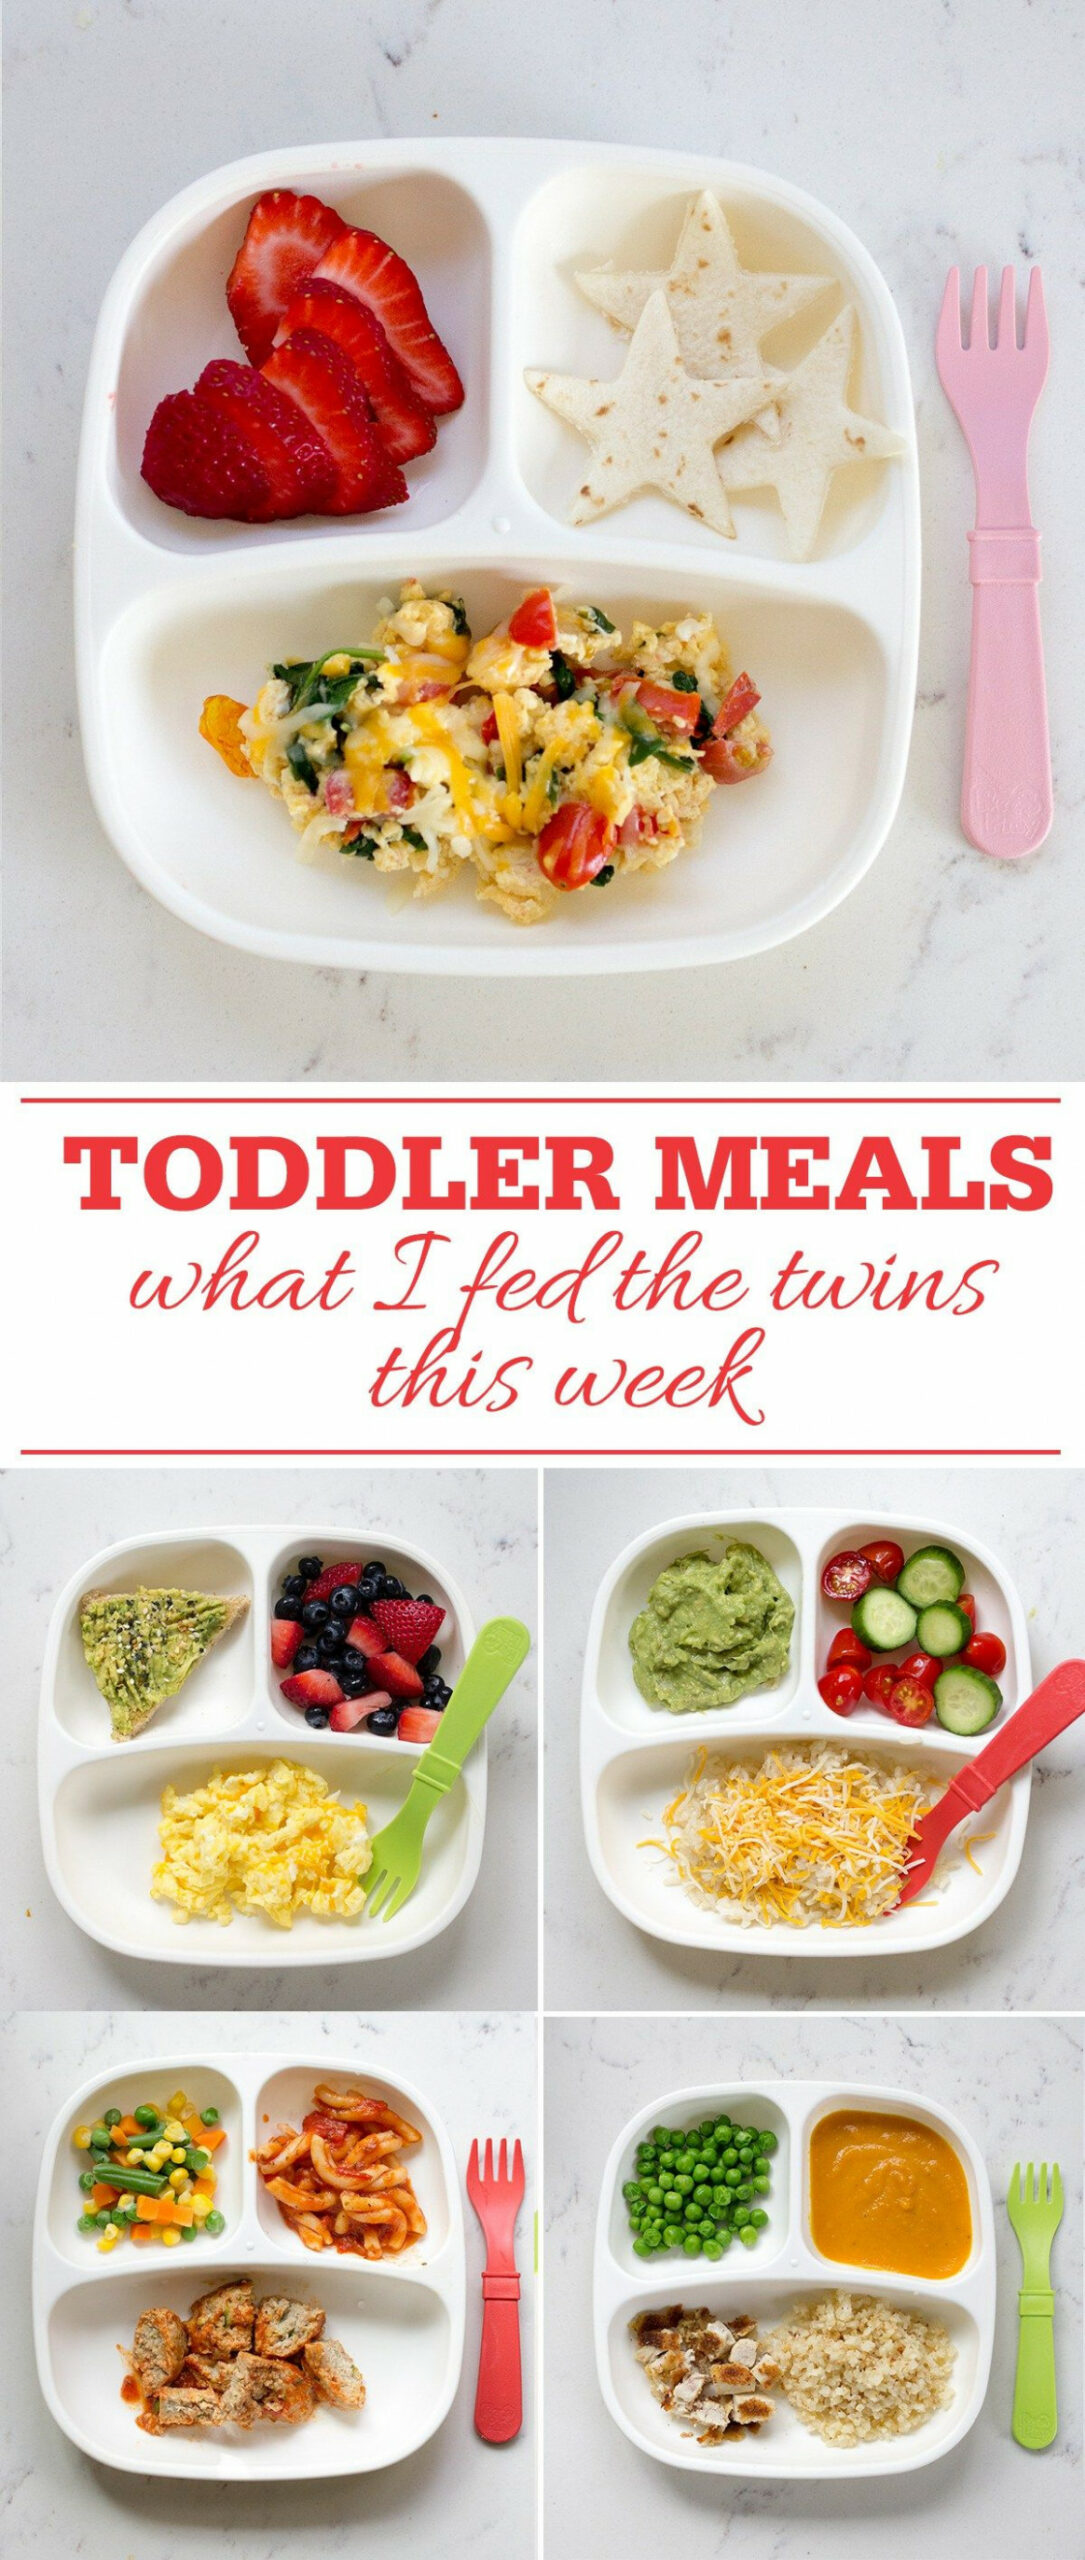 Toddler Meals What I Fed The Twins This Week | Baby Food ..